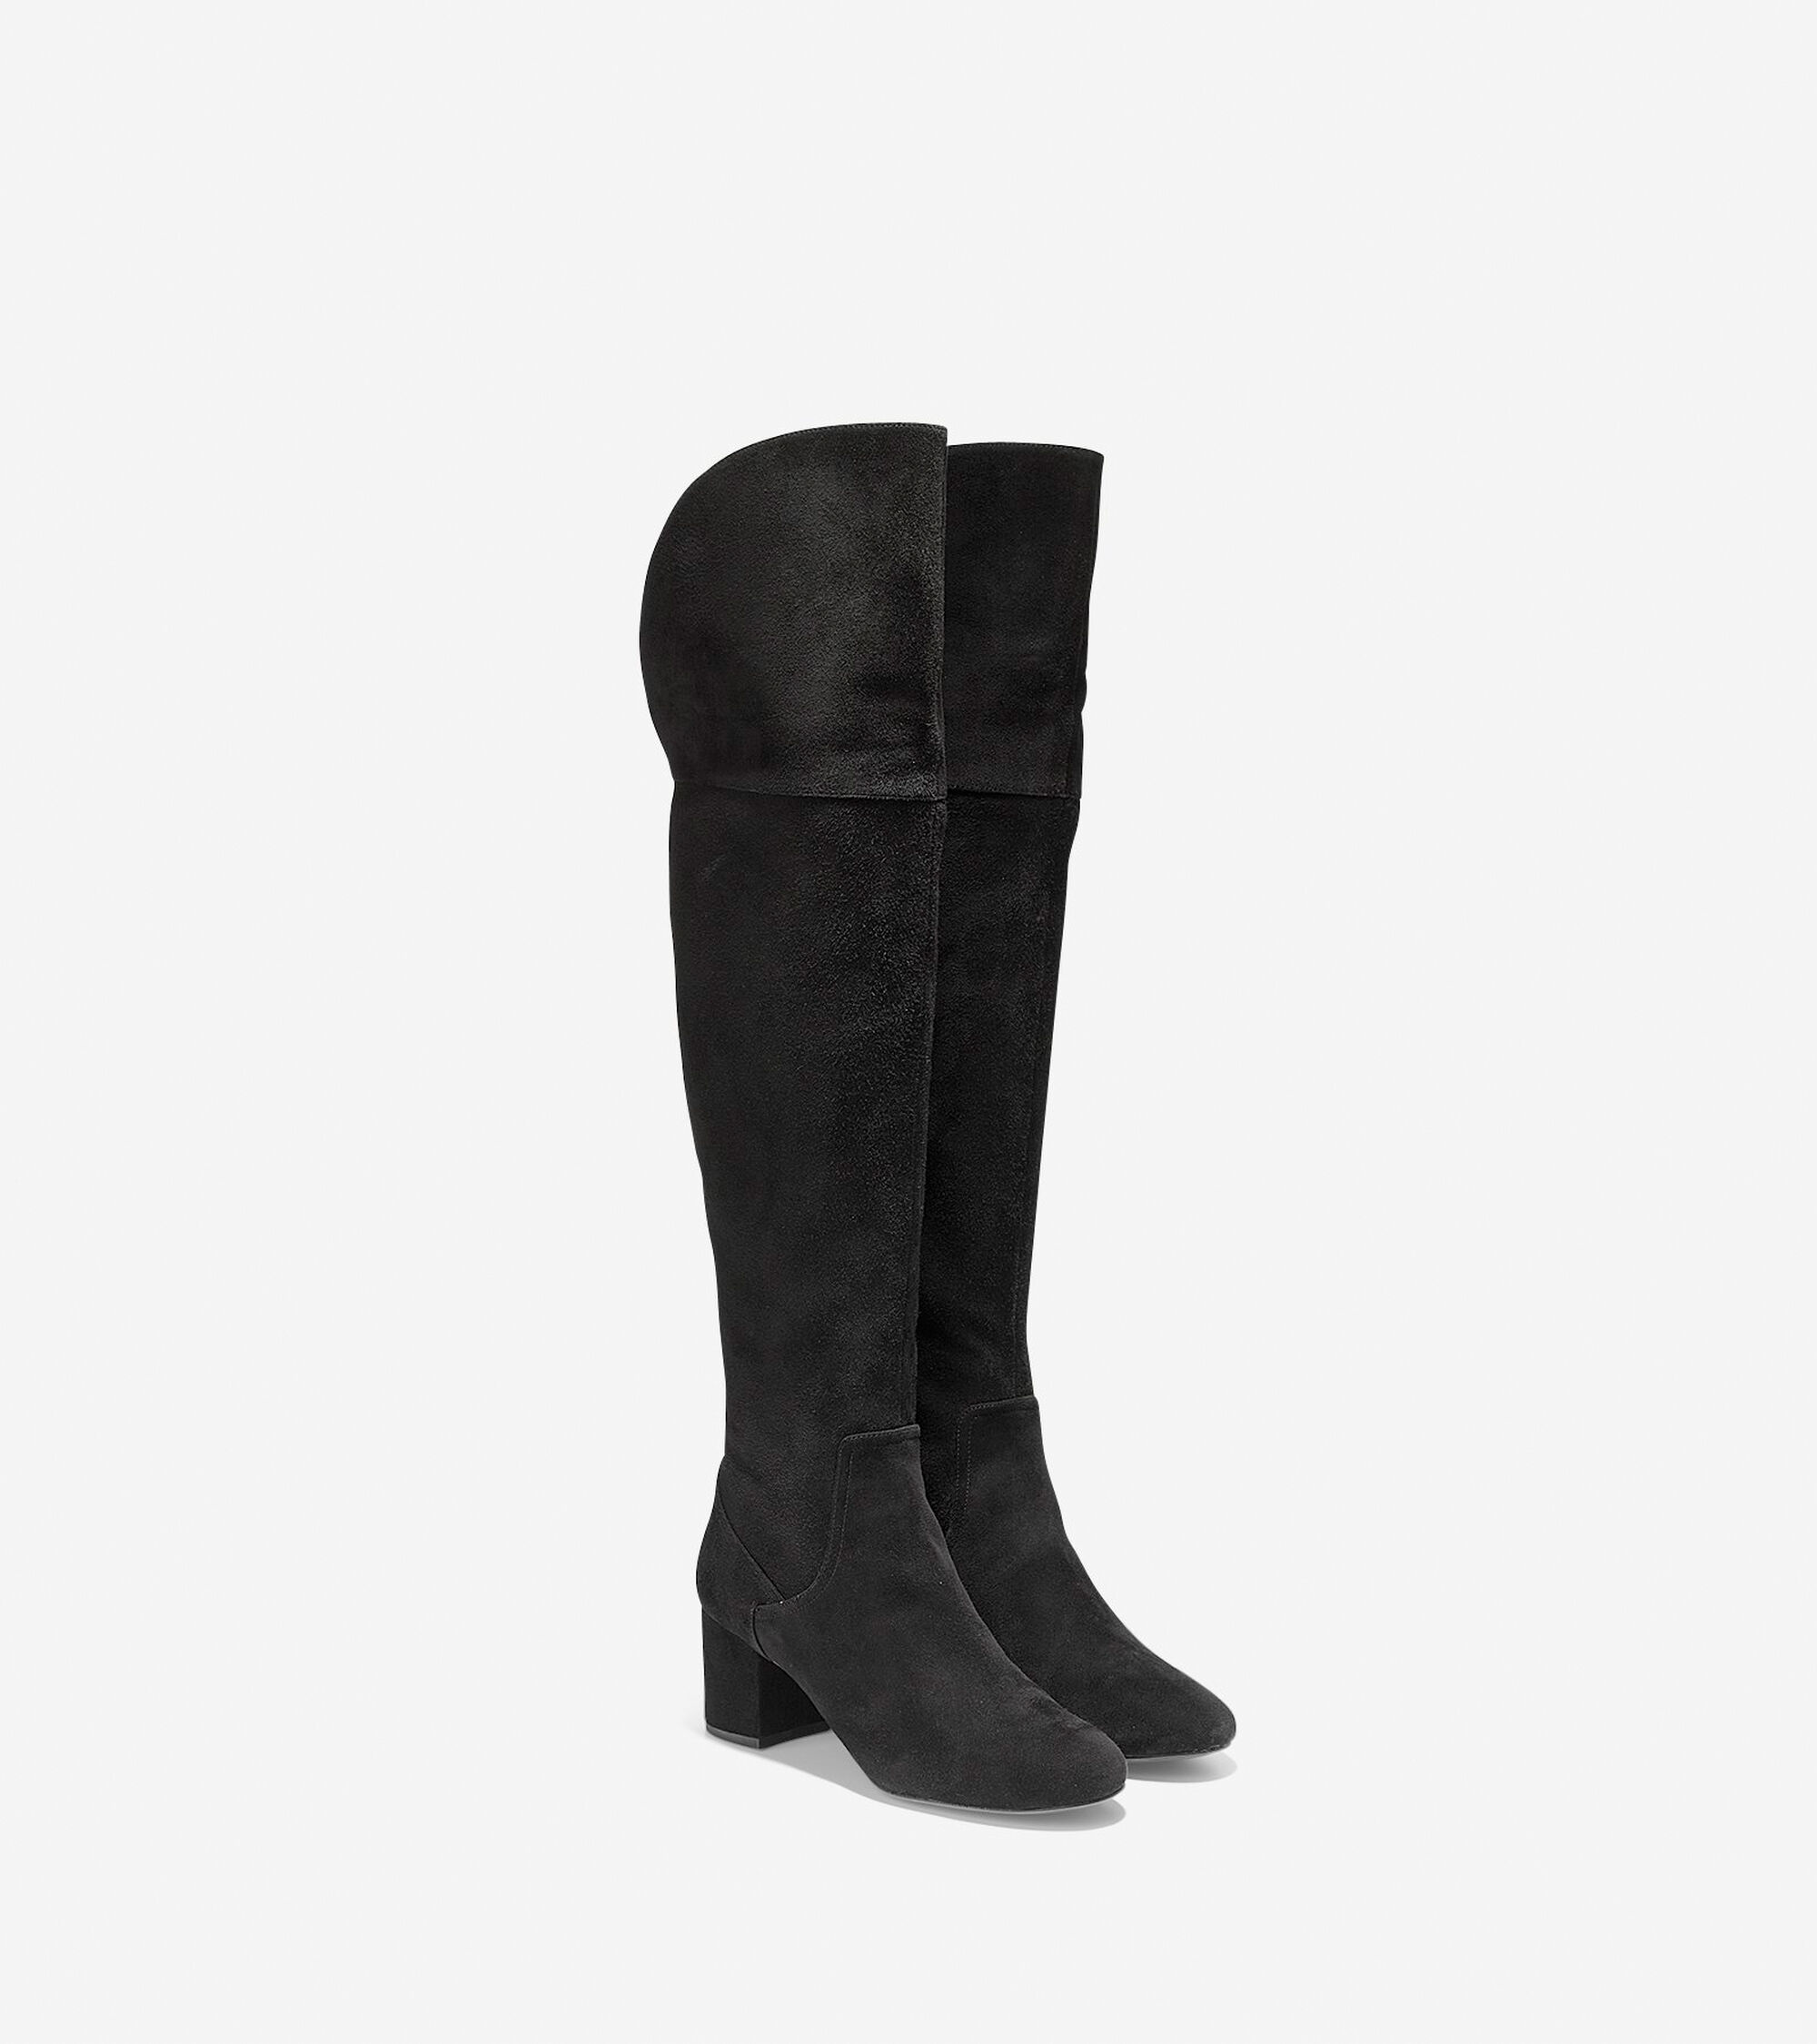 7426d33c74a Women s Raina Grand Over The Knee Boots 55mm in Black